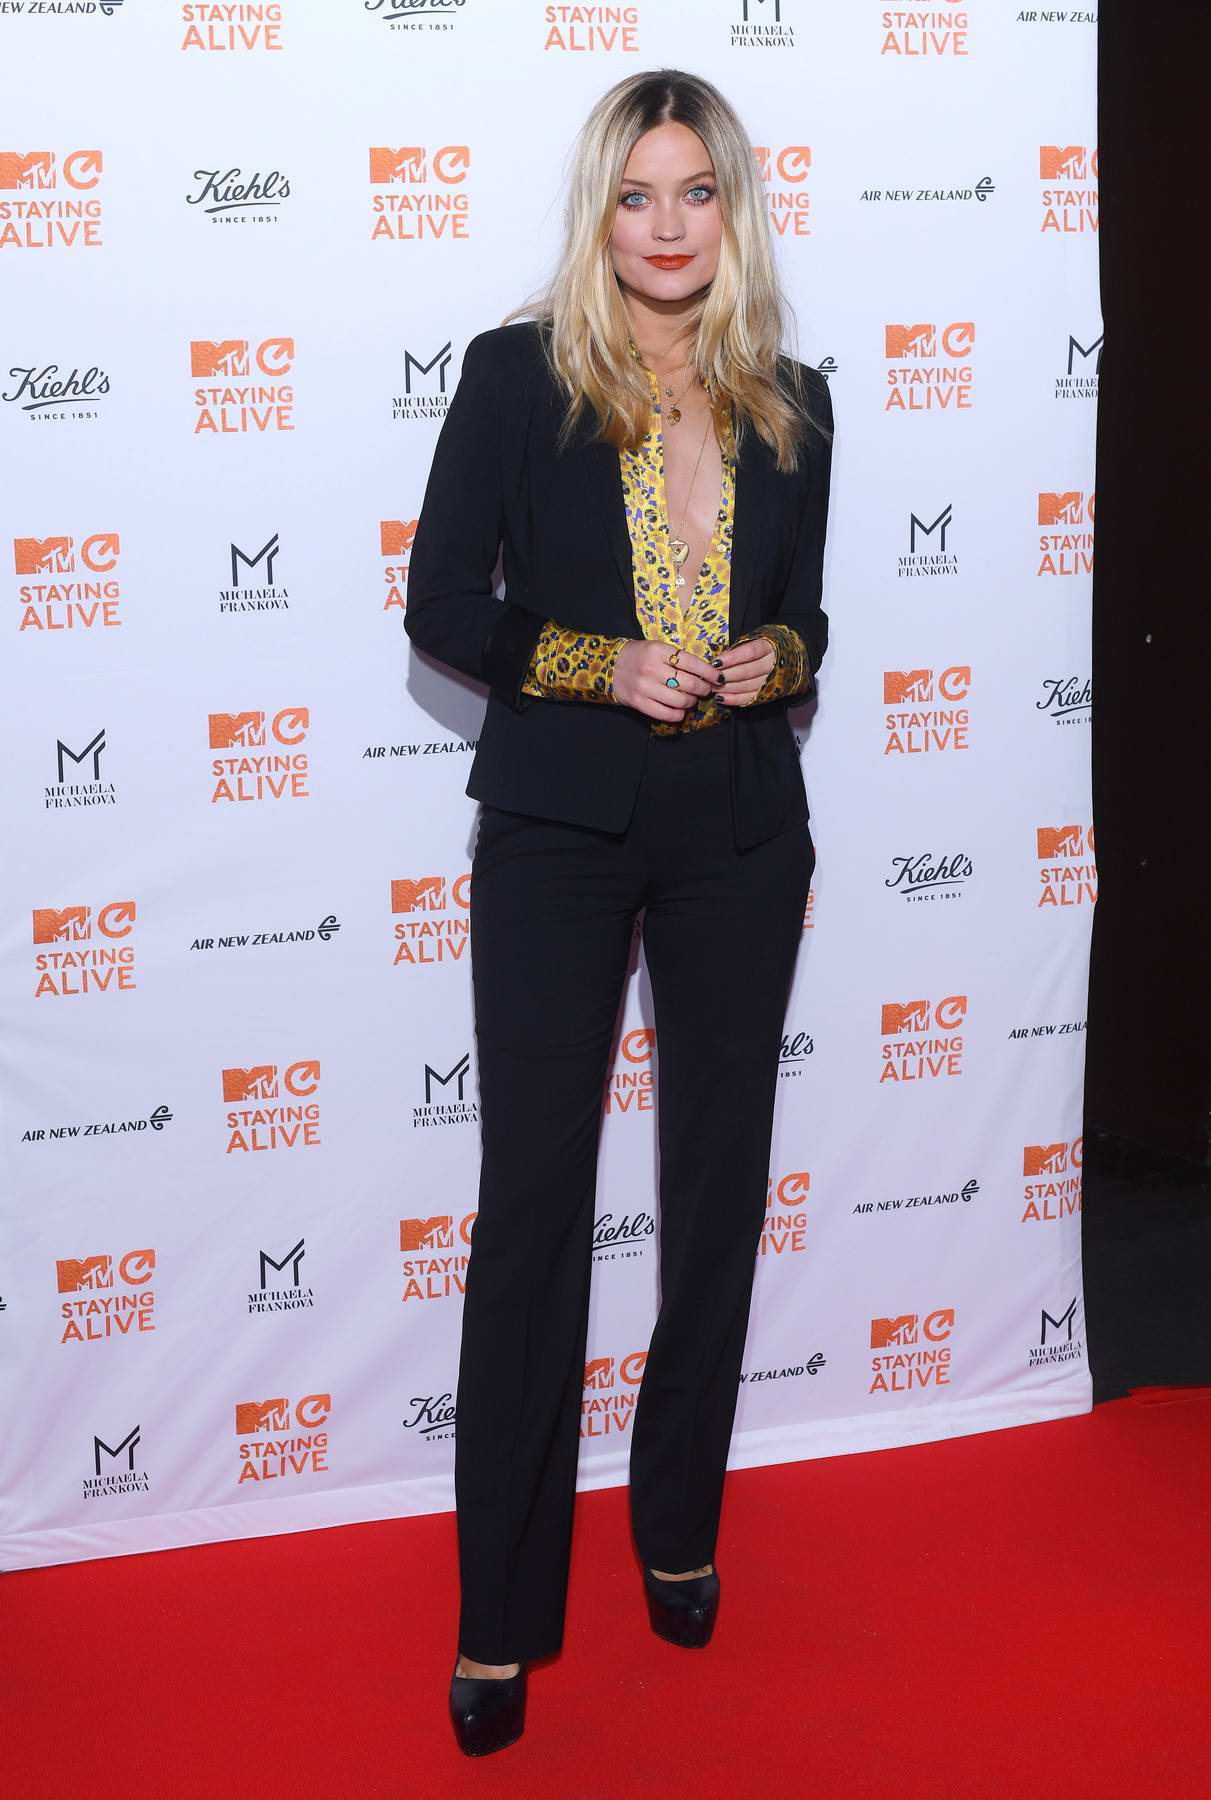 Laura Whitmore attends the MTV Staying Alive Gala at 100 Wardour Street in London